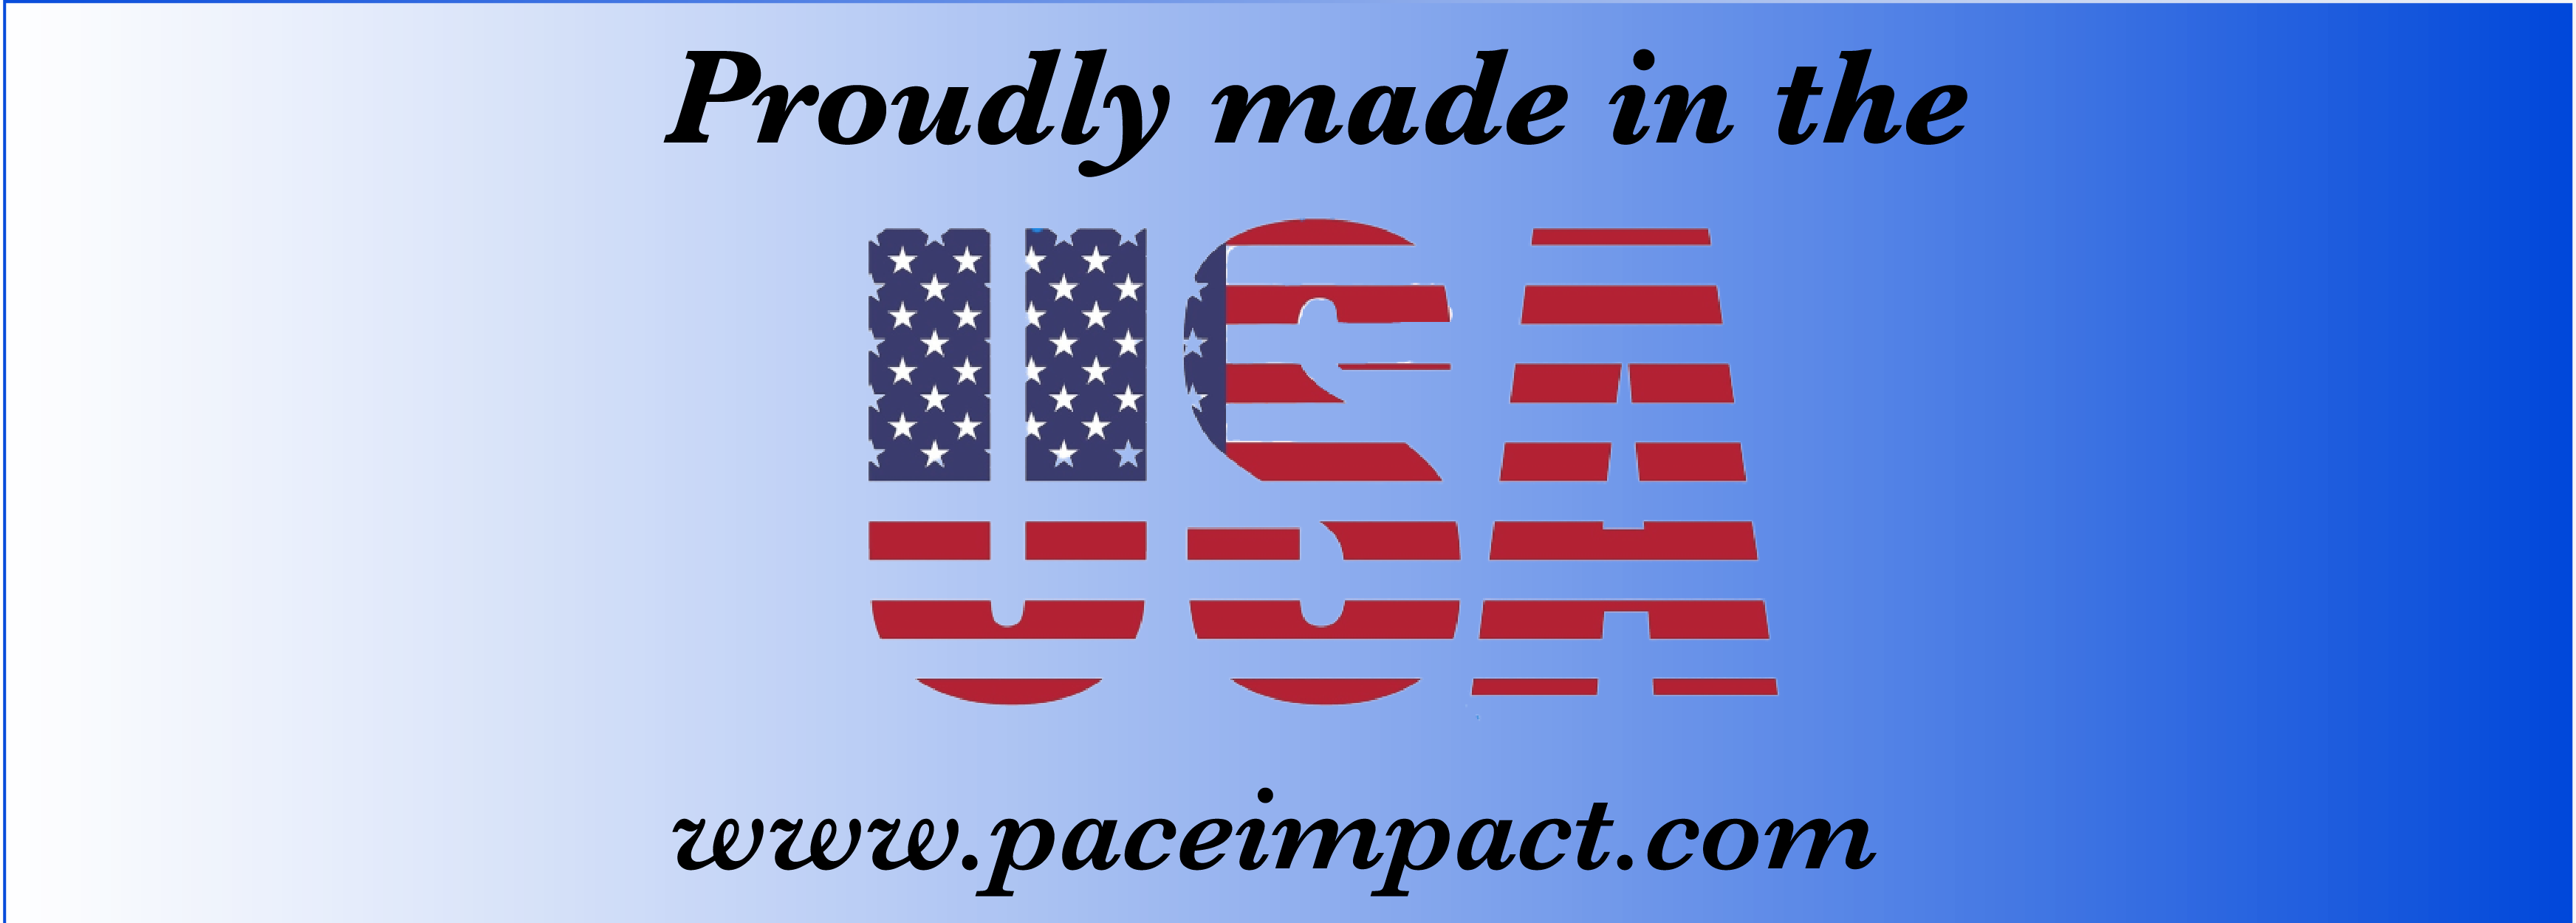 Pace_Banner_MadeinUSA-01